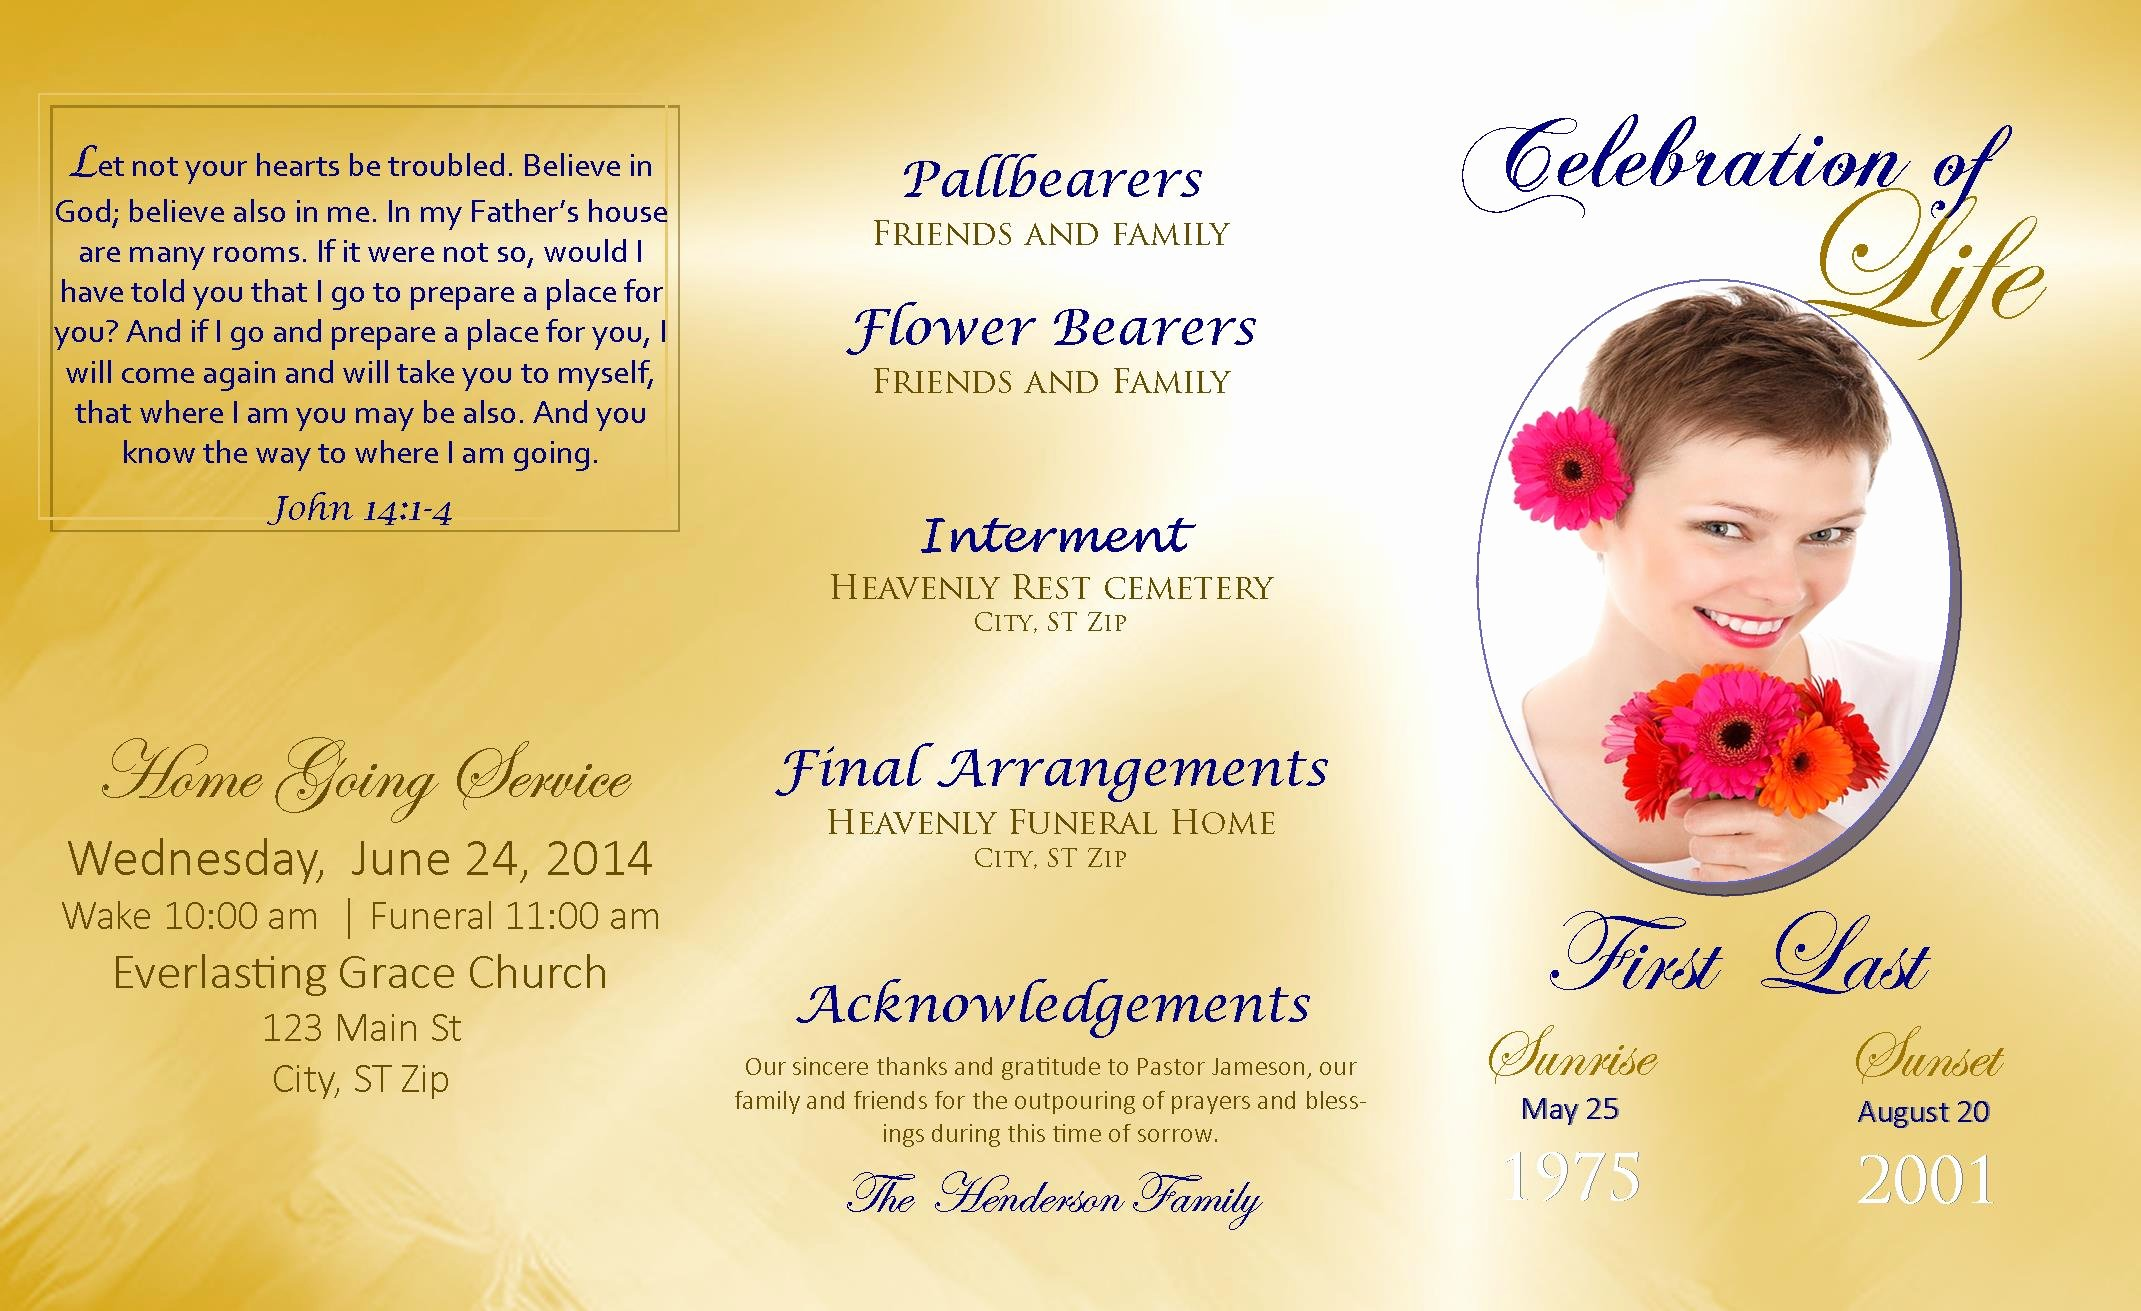 Celebration Of Life Program Template Inspirational Lifecycleprints Celebration Of Life & Funeral Program